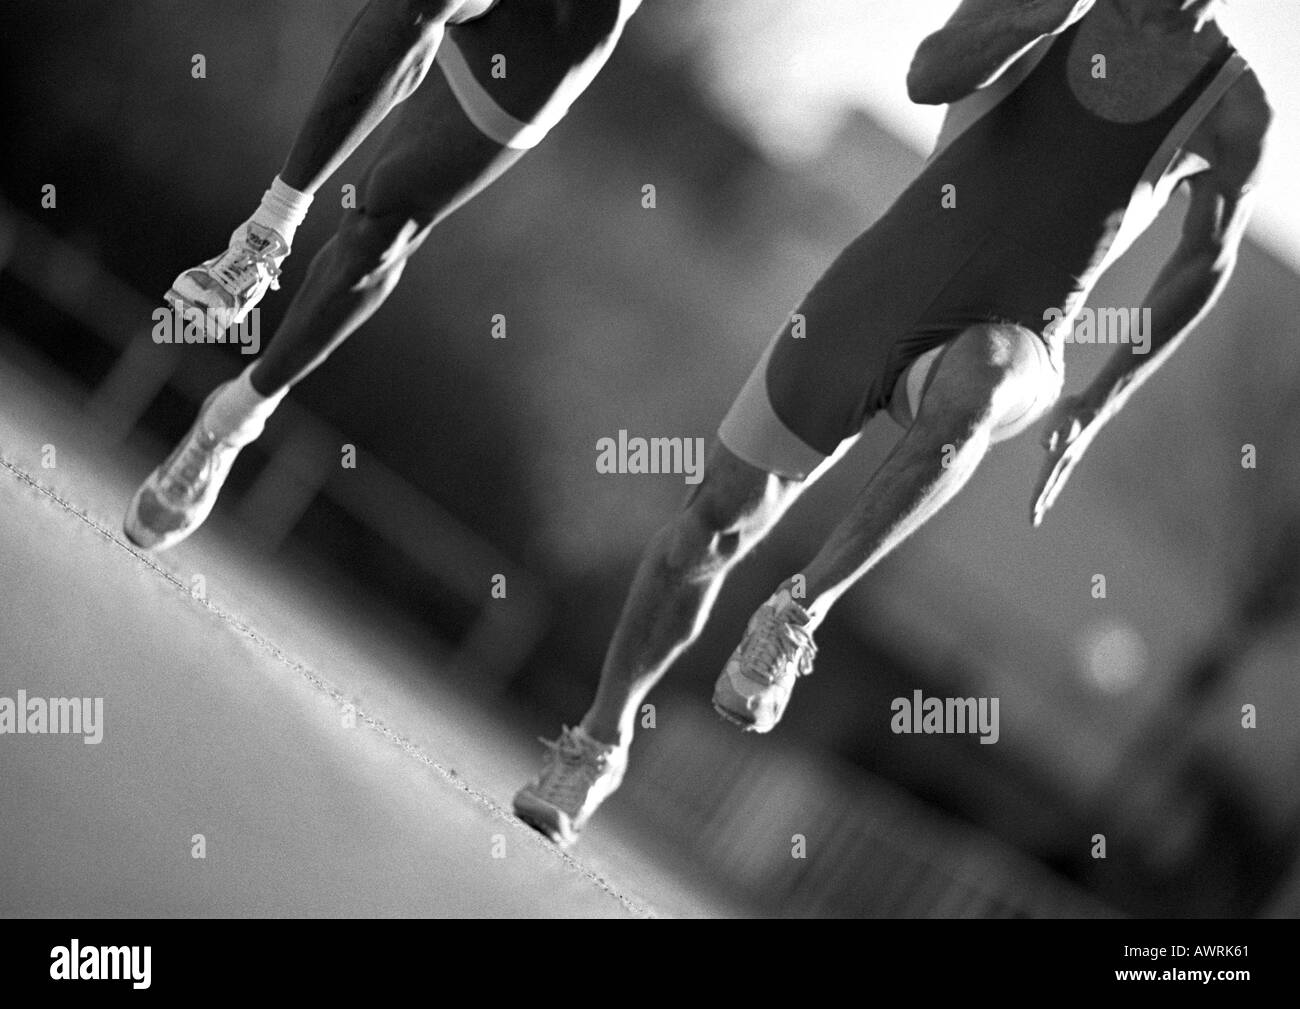 Male athletes running, close-up, b&w Stock Photo